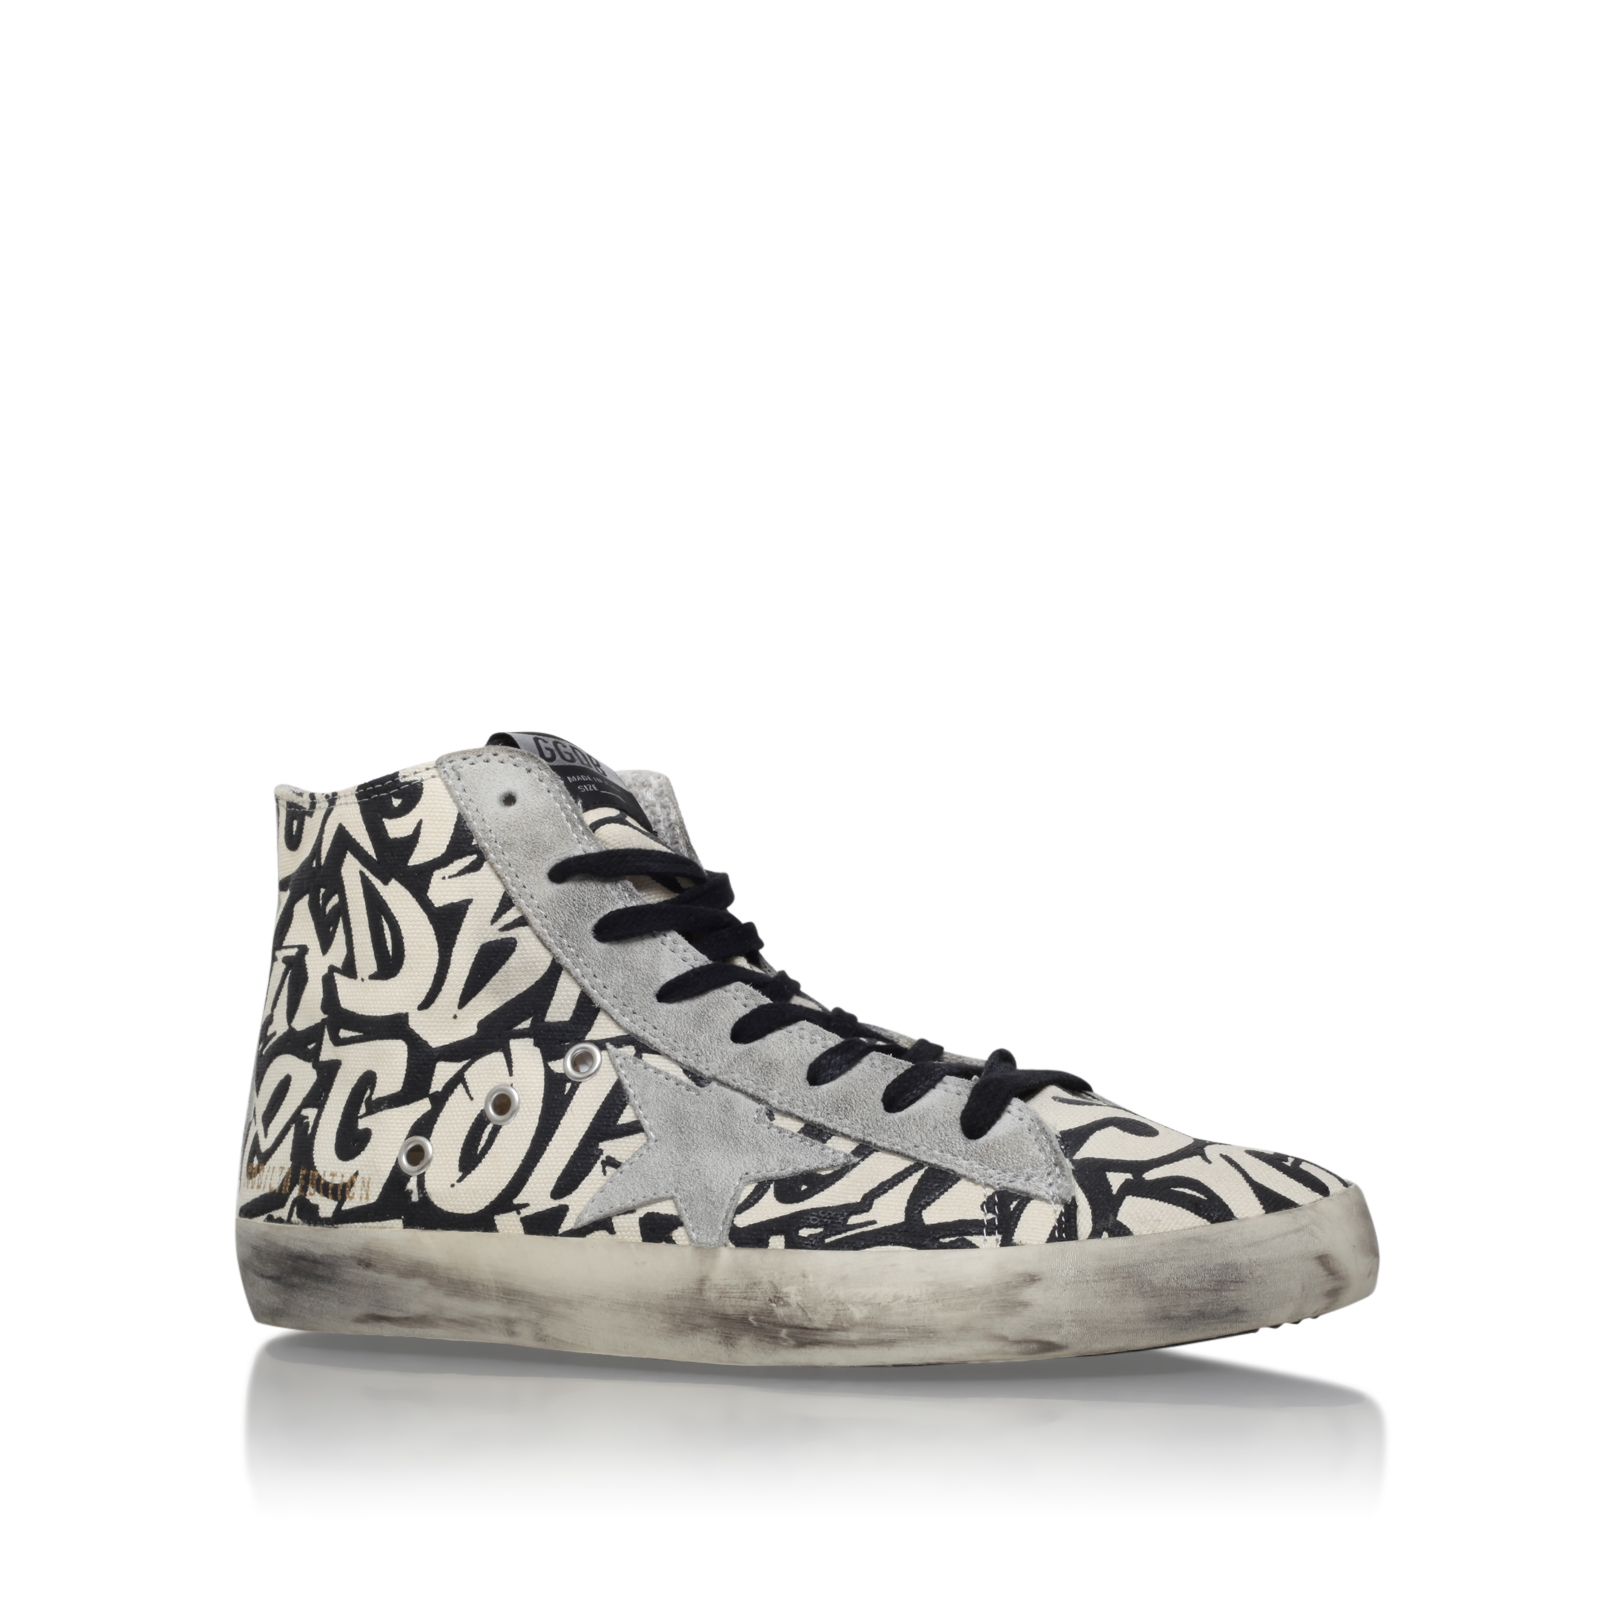 FRANCY GRAFF HI TOP